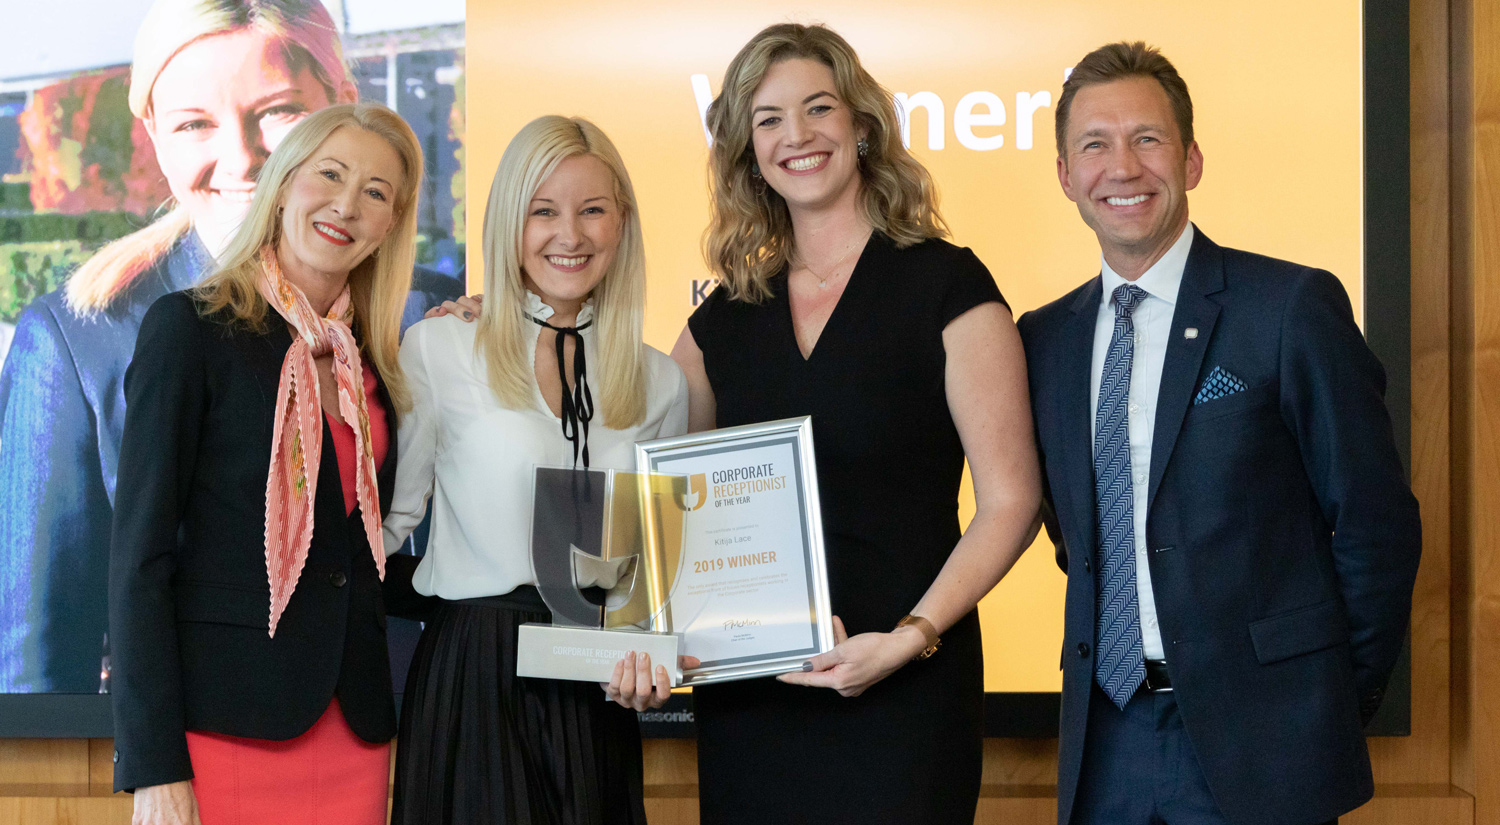 Kitija Lace wins Corporate Receptionist of the Year 2019